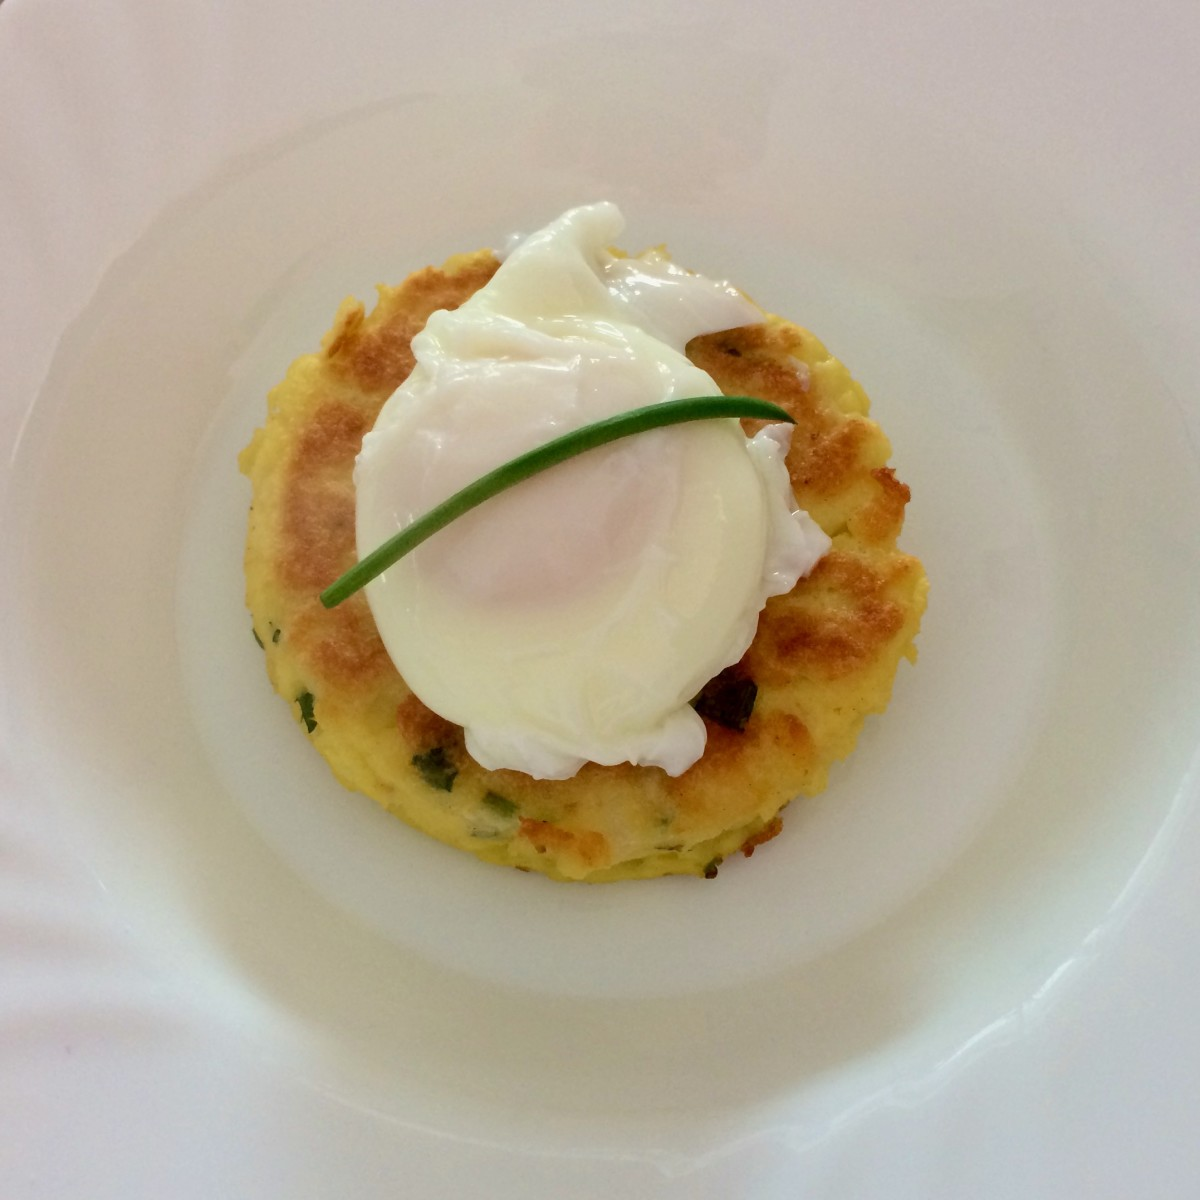 Potato cake with a poached egg